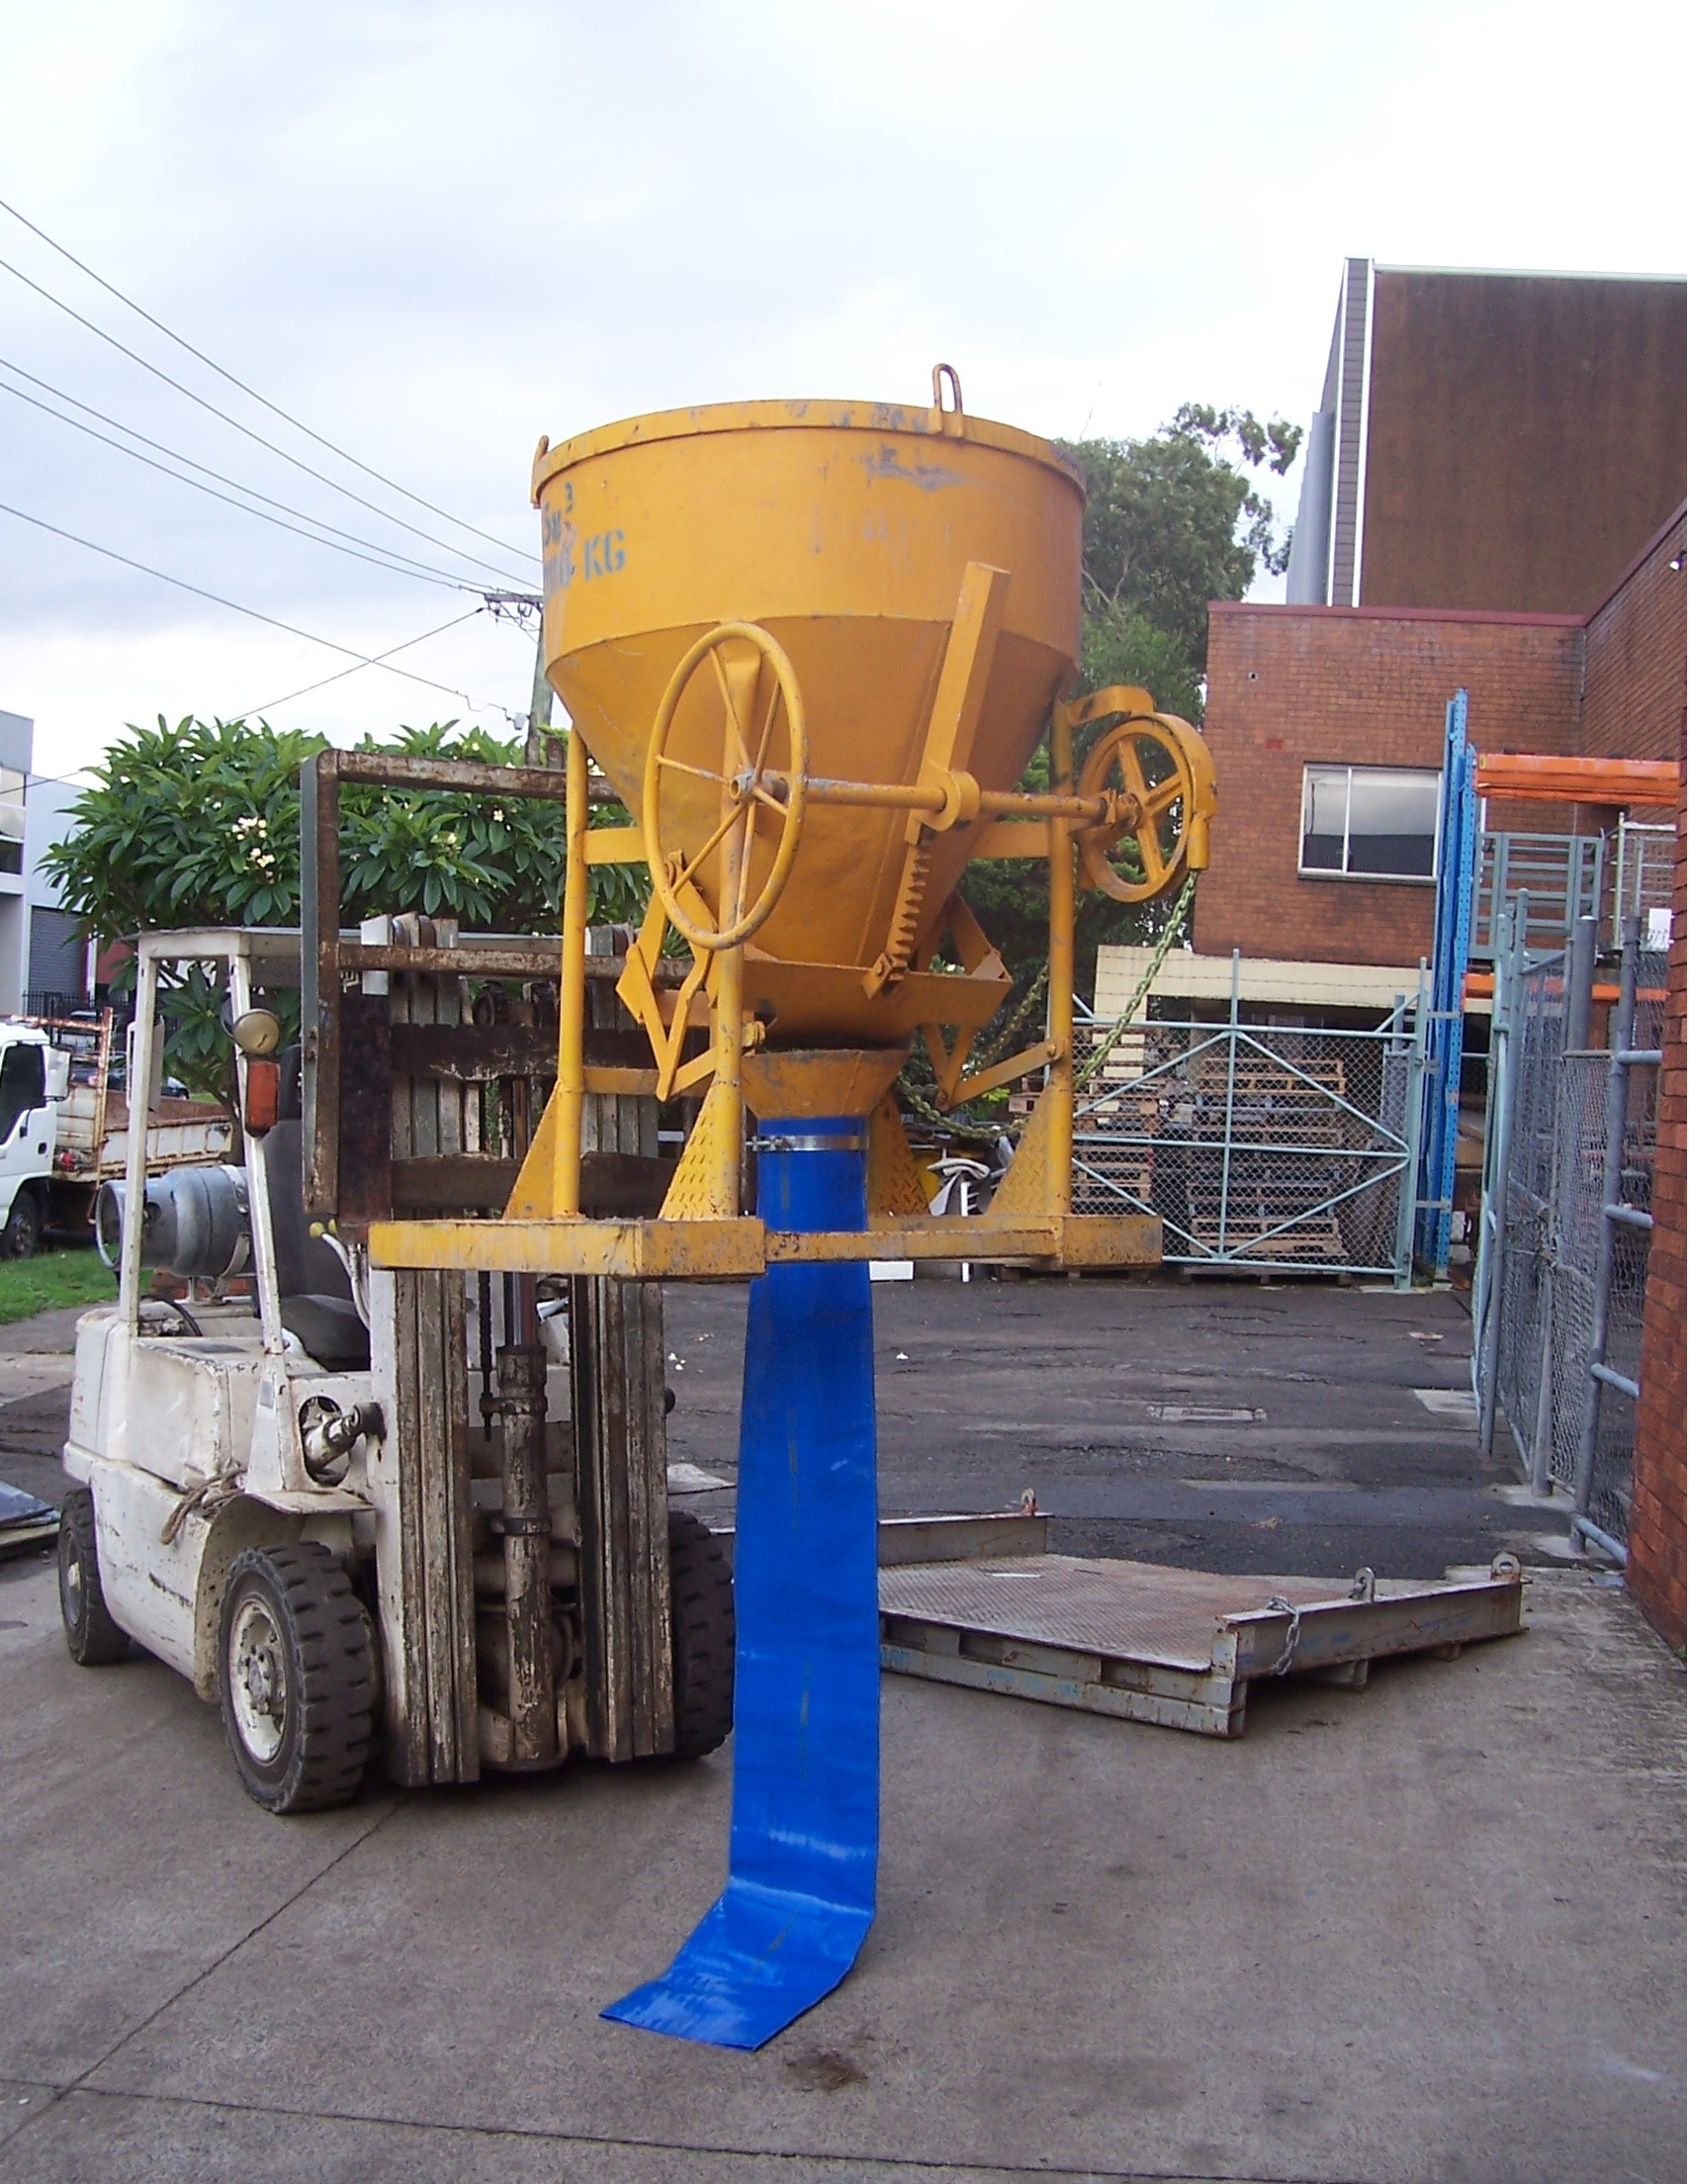 Concrete Kibble 19    Safe Working Load  - 1200 kg  Capacity  - 0.5 cbm  Characteristic  - Chain and wheel operated with elephant hose for block or wall filling.